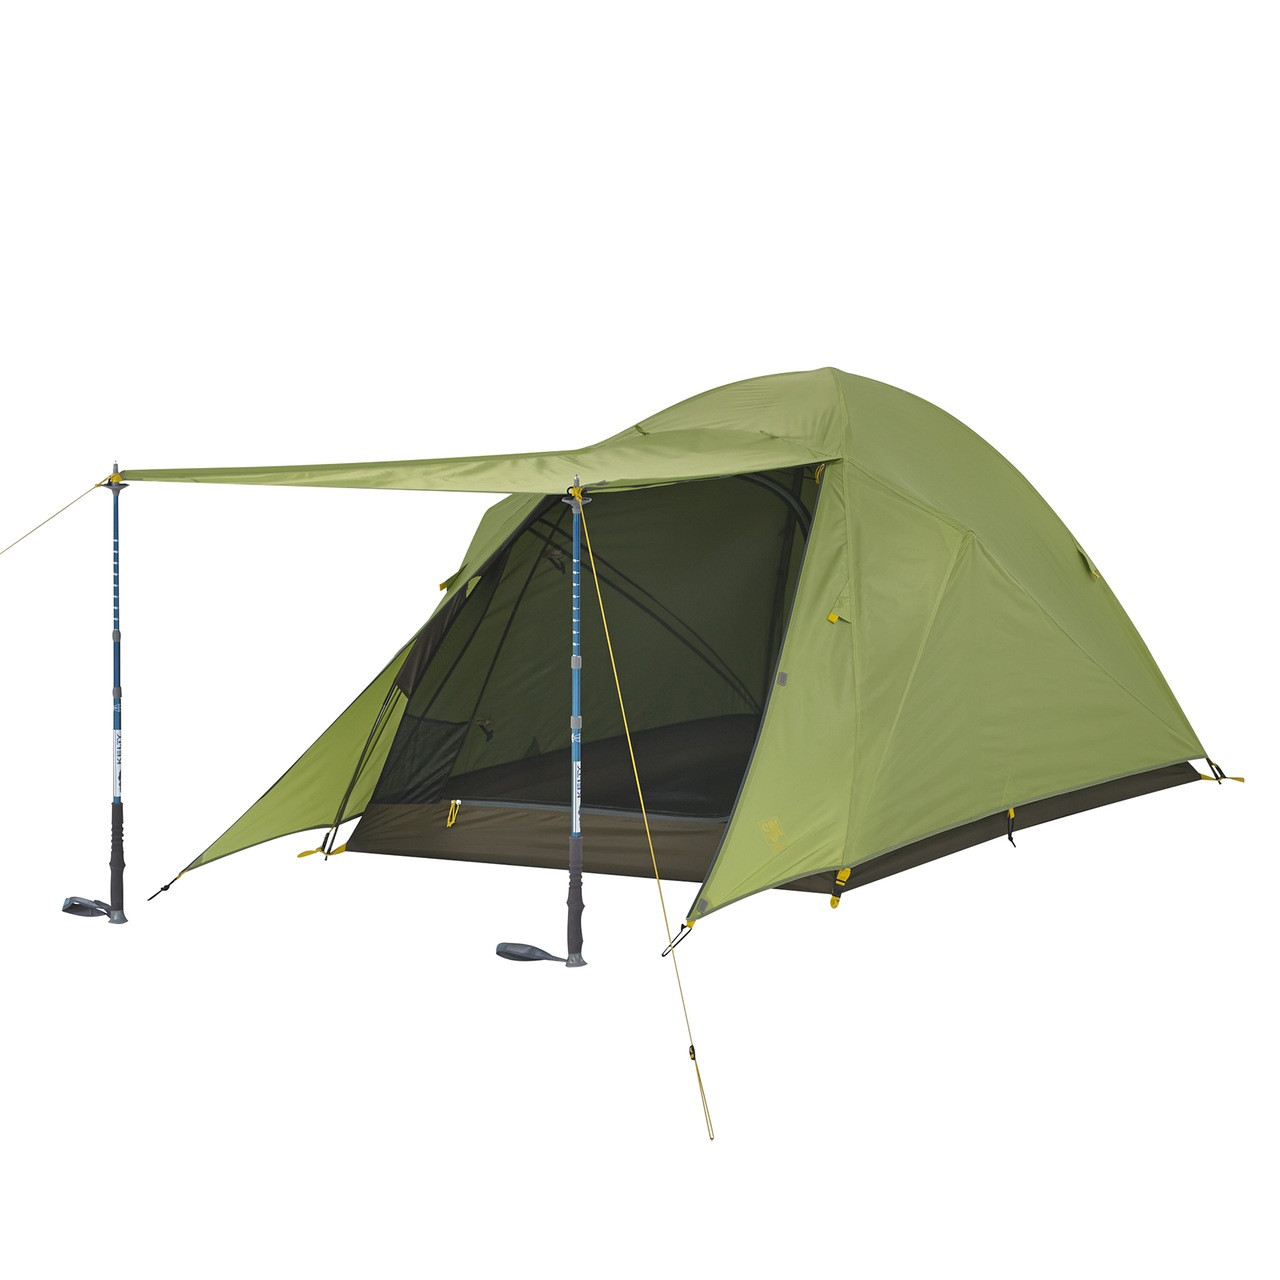 ... Daybreak 2-Person Tent. Image 1  sc 1 st  Slumberjack : 2 person tent - memphite.com